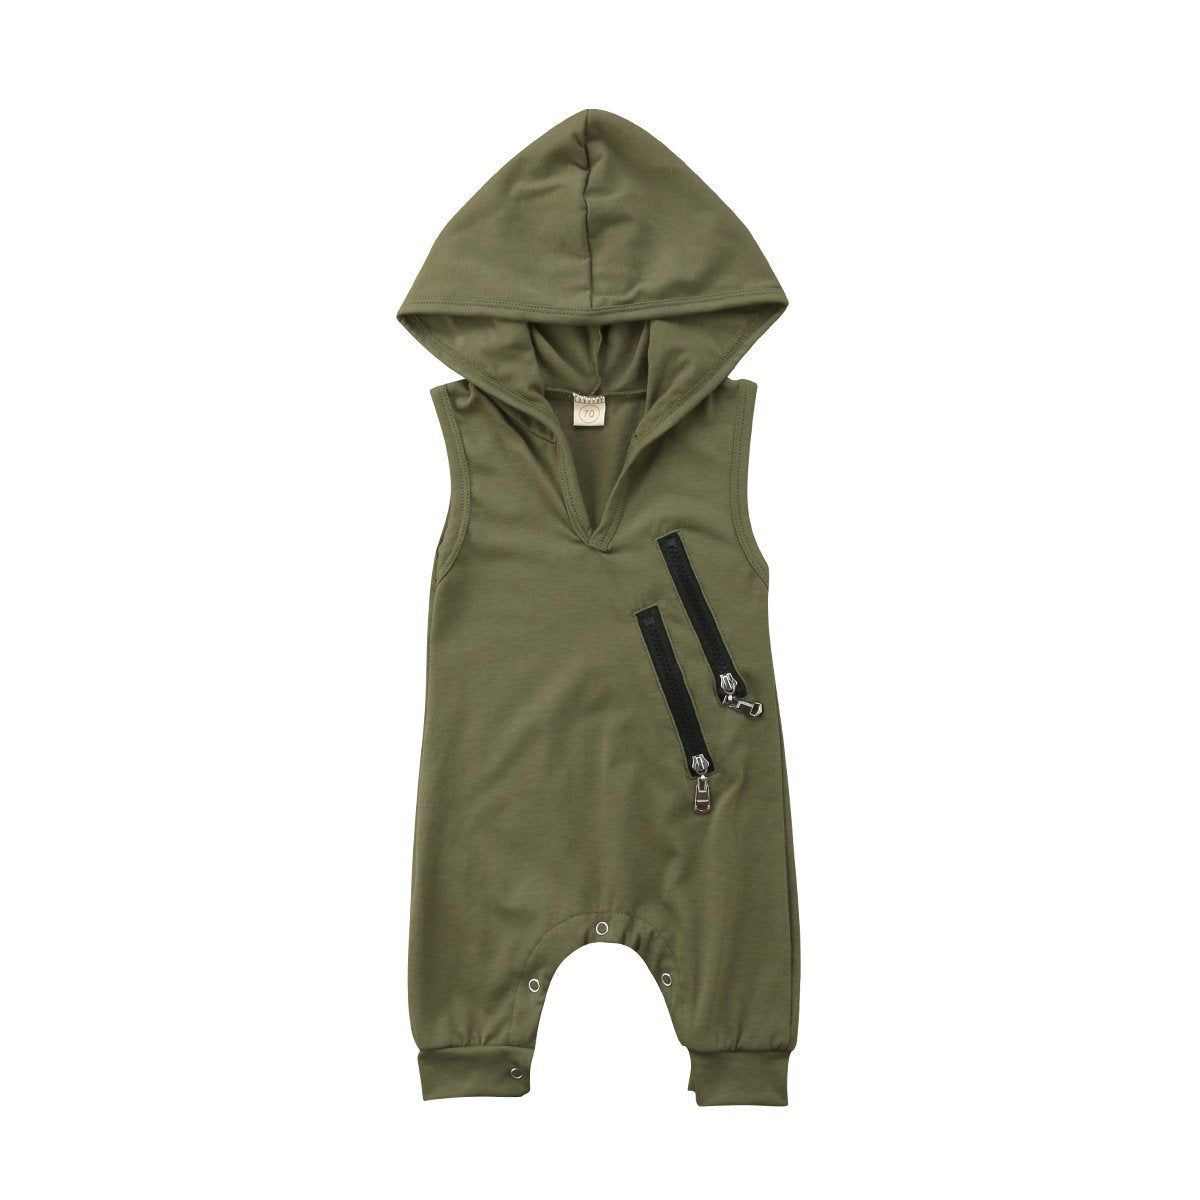 Cute Newborn Baby Boys Girls Camo Hooded Romper Jumpsuit Playsuit Clothesdresskily-dresskily